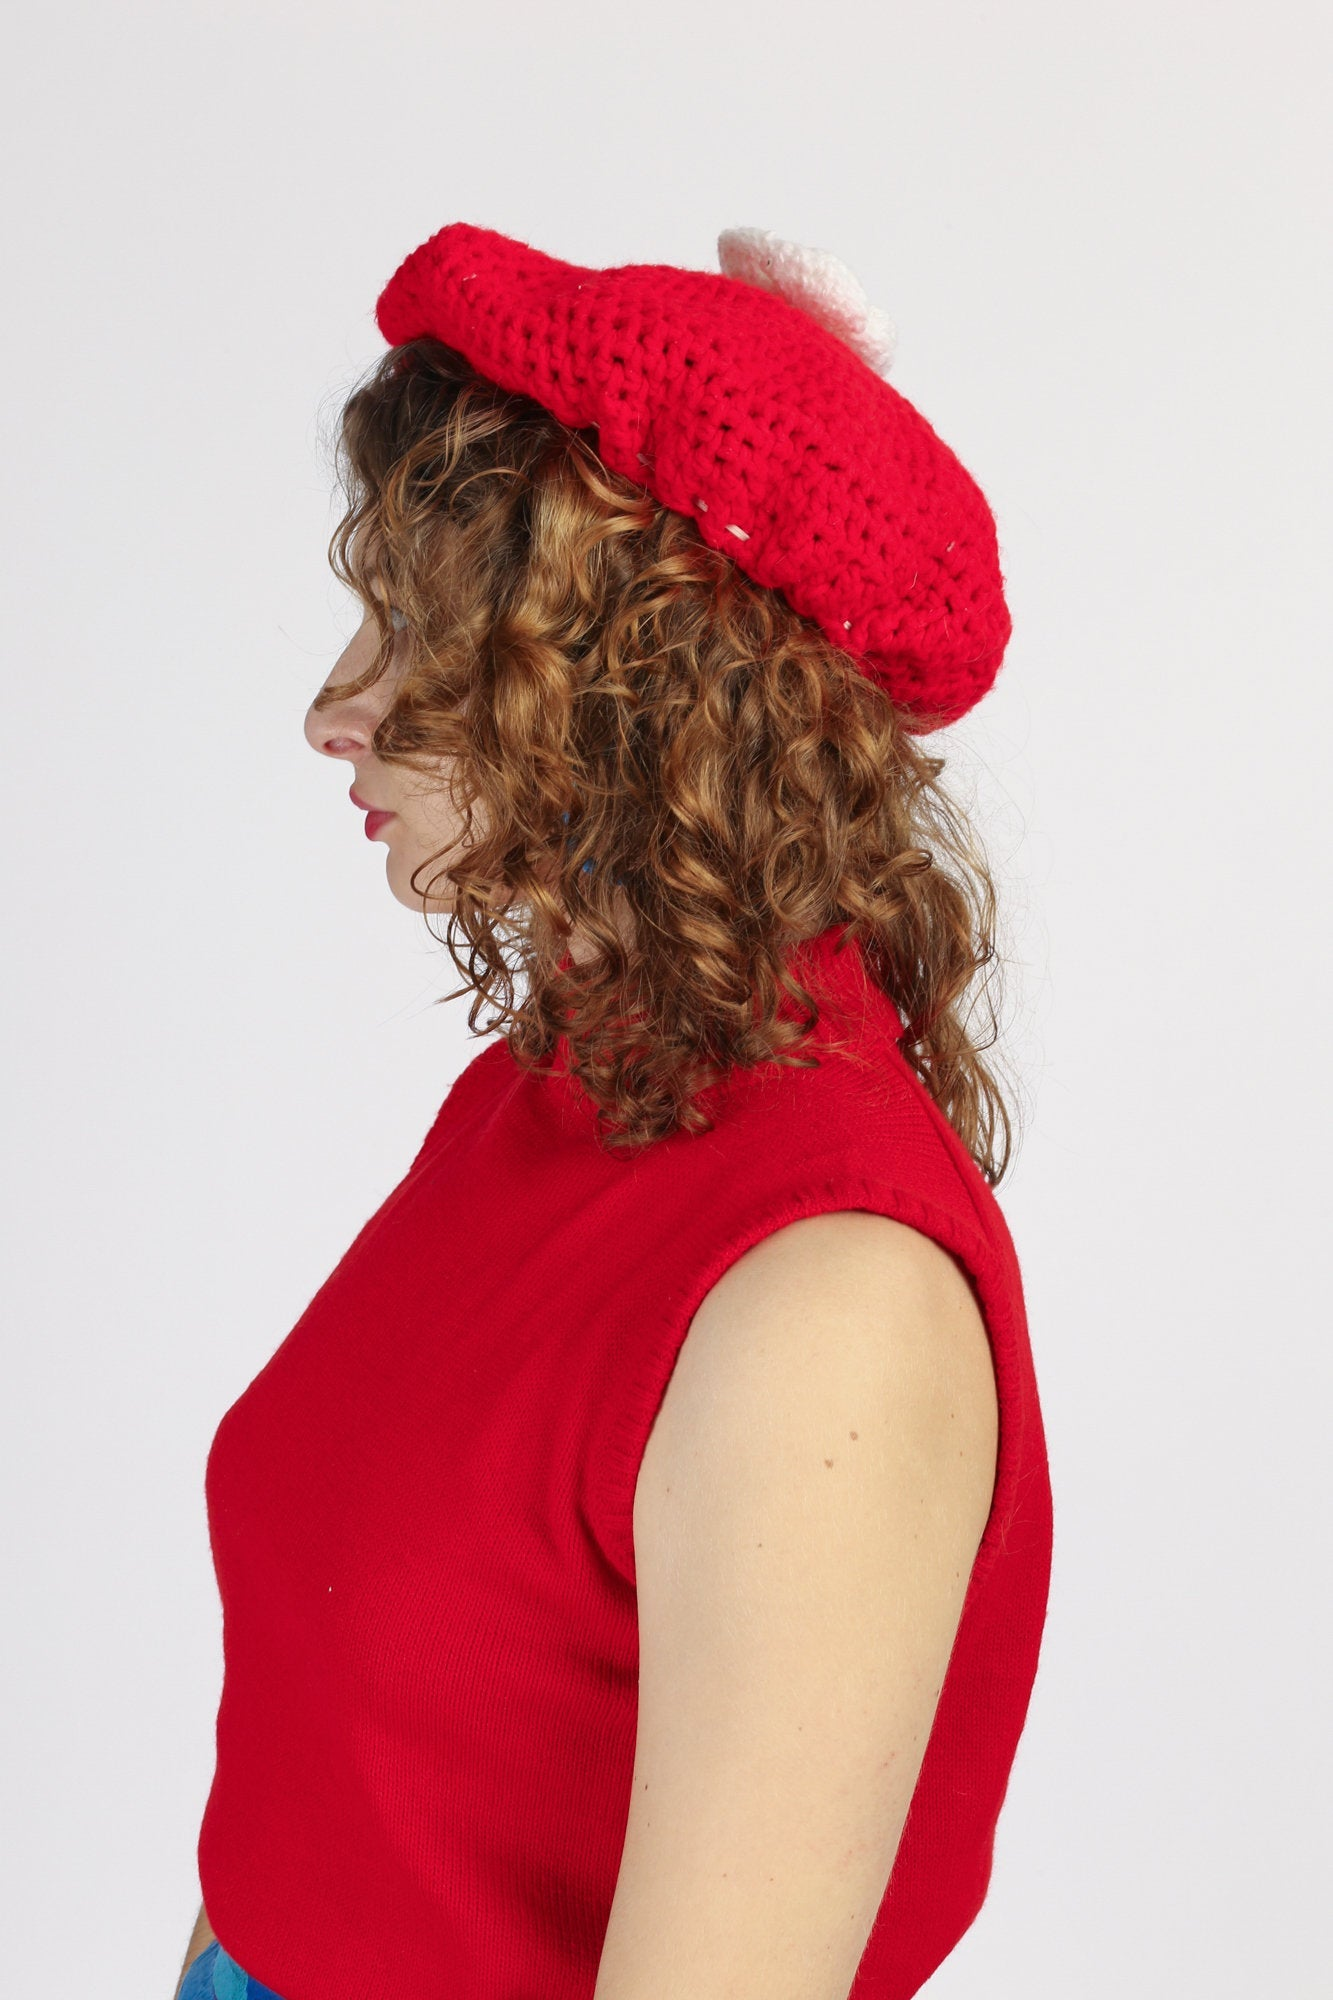 Vintage Red & White Knit Rose Pom Pom Beret - One Size